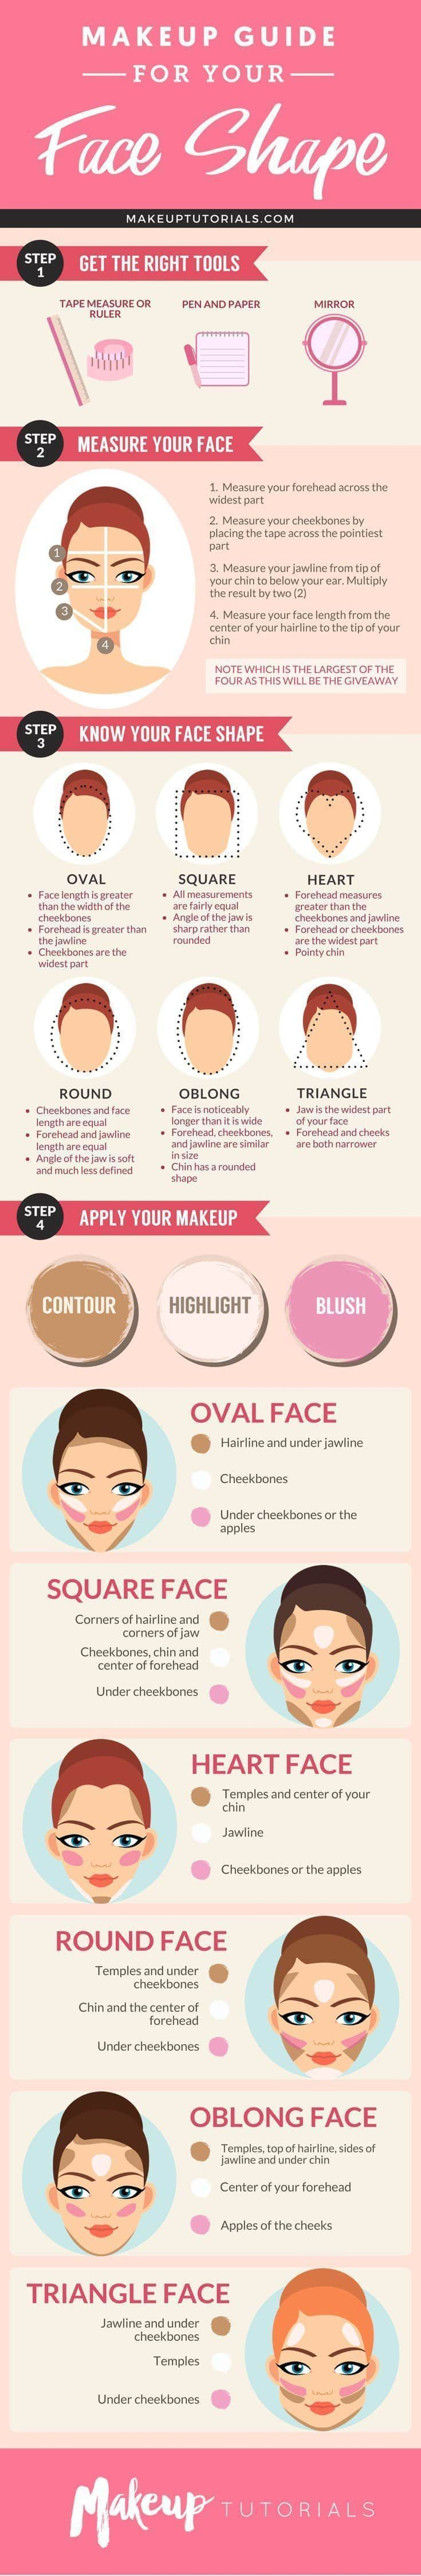 determine your face shape to help you contour highlight awesomeness make up beauty. Black Bedroom Furniture Sets. Home Design Ideas